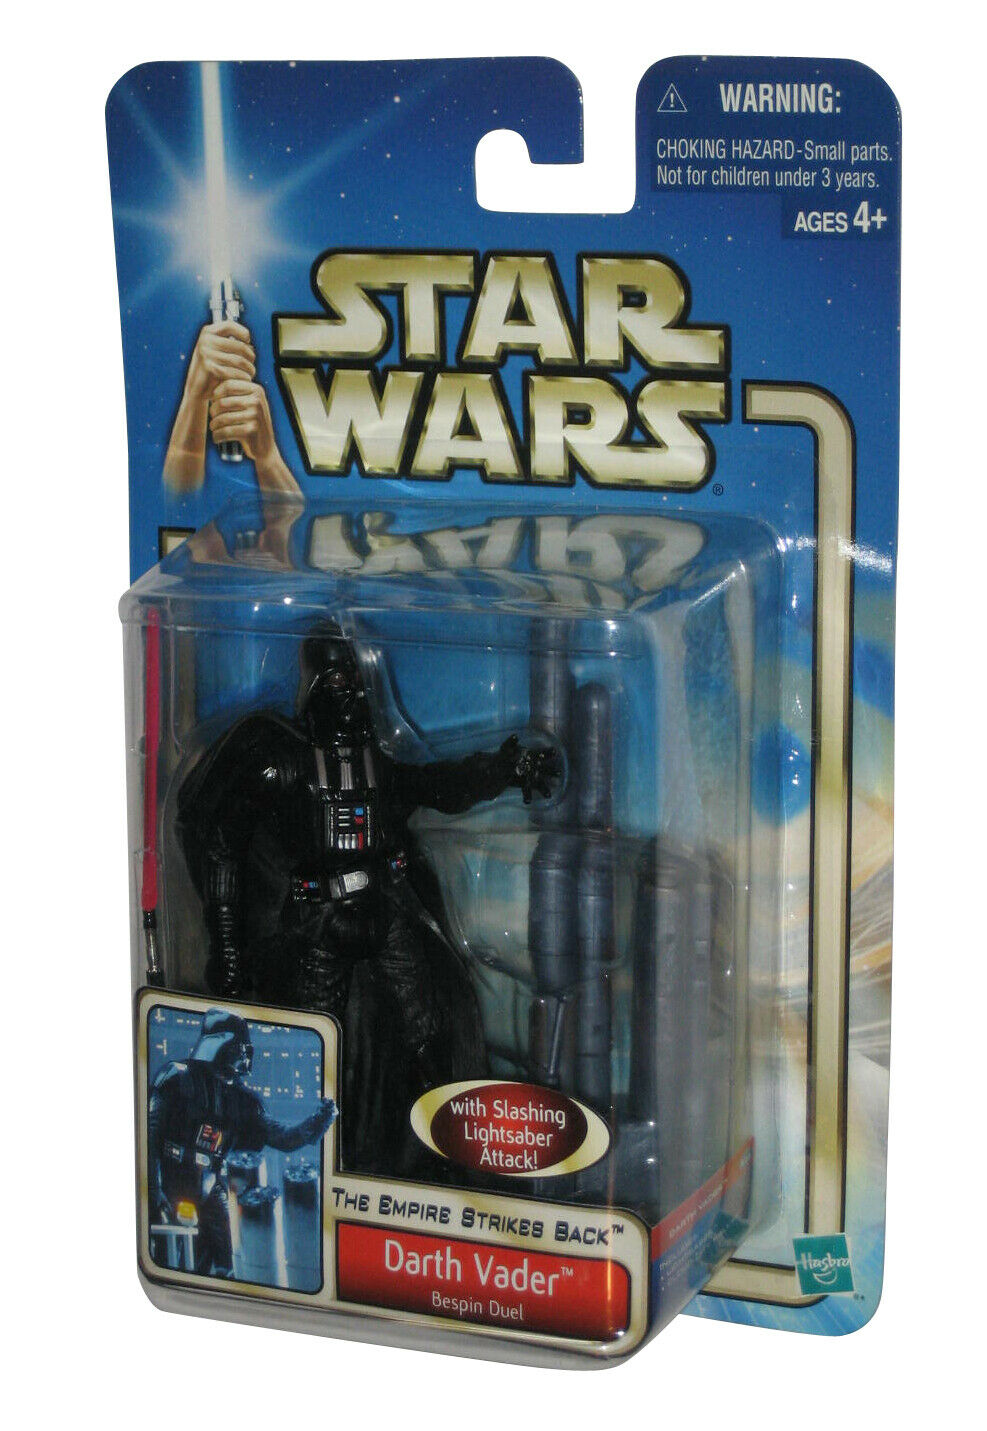 Hasbro Star Wars The Empire Strikes Back Luke Skywalker figura de acción-moc nuevo